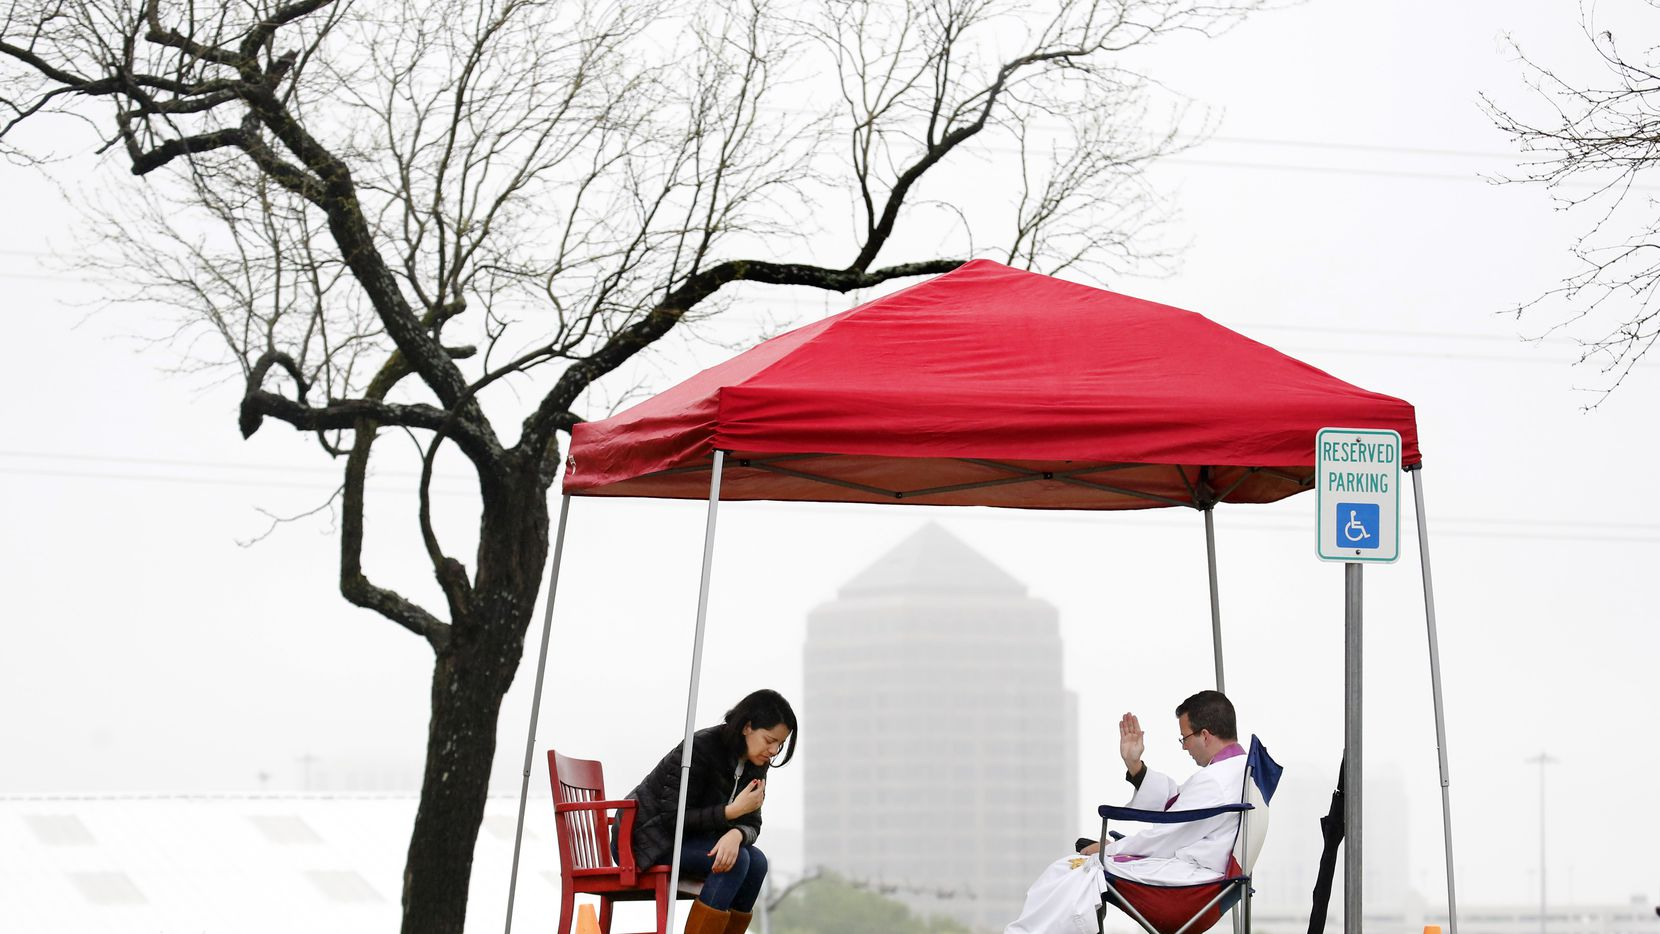 Under a light mist, Regnum Christi priest Fr. Michael Picard (right) prayed for Anabel Cardova of Coppell as he listened to her confessions at The Highlands School in Irving, Texas. Priests took confessions from parishioners under tents as they drove up in their cars, Sunday, March 22, 2020. With public spaces shut down amid the coronavirus pandemic, churches are getting creative about providing sacramental relief to their members.(Tom Fox/The Dallas Morning News)